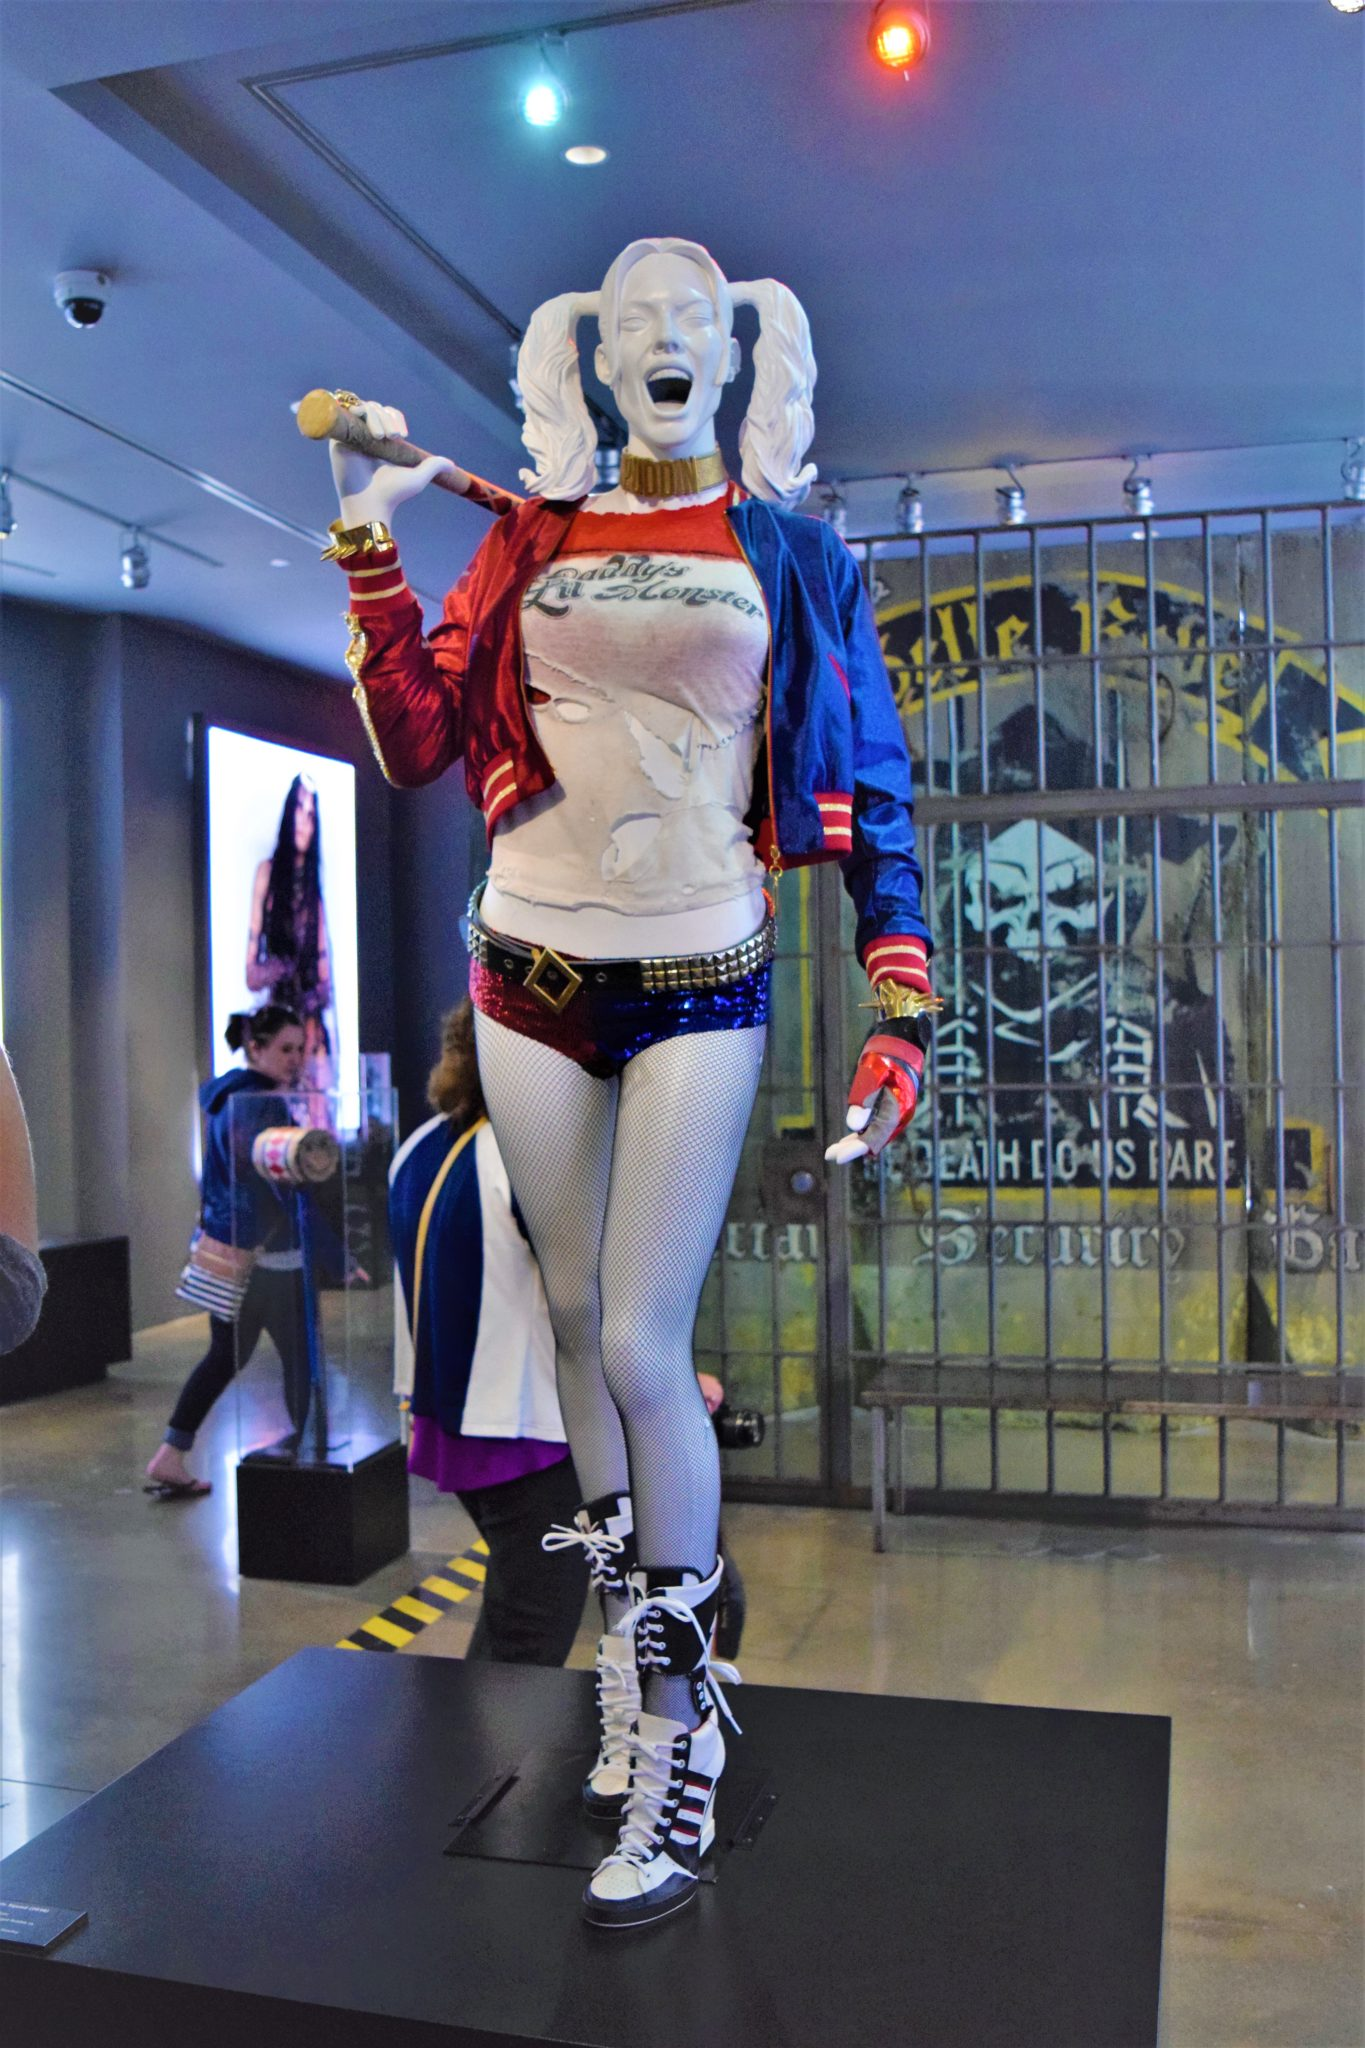 Suicide Squad costumes and props Warner Brothers Studios, Los Angeles